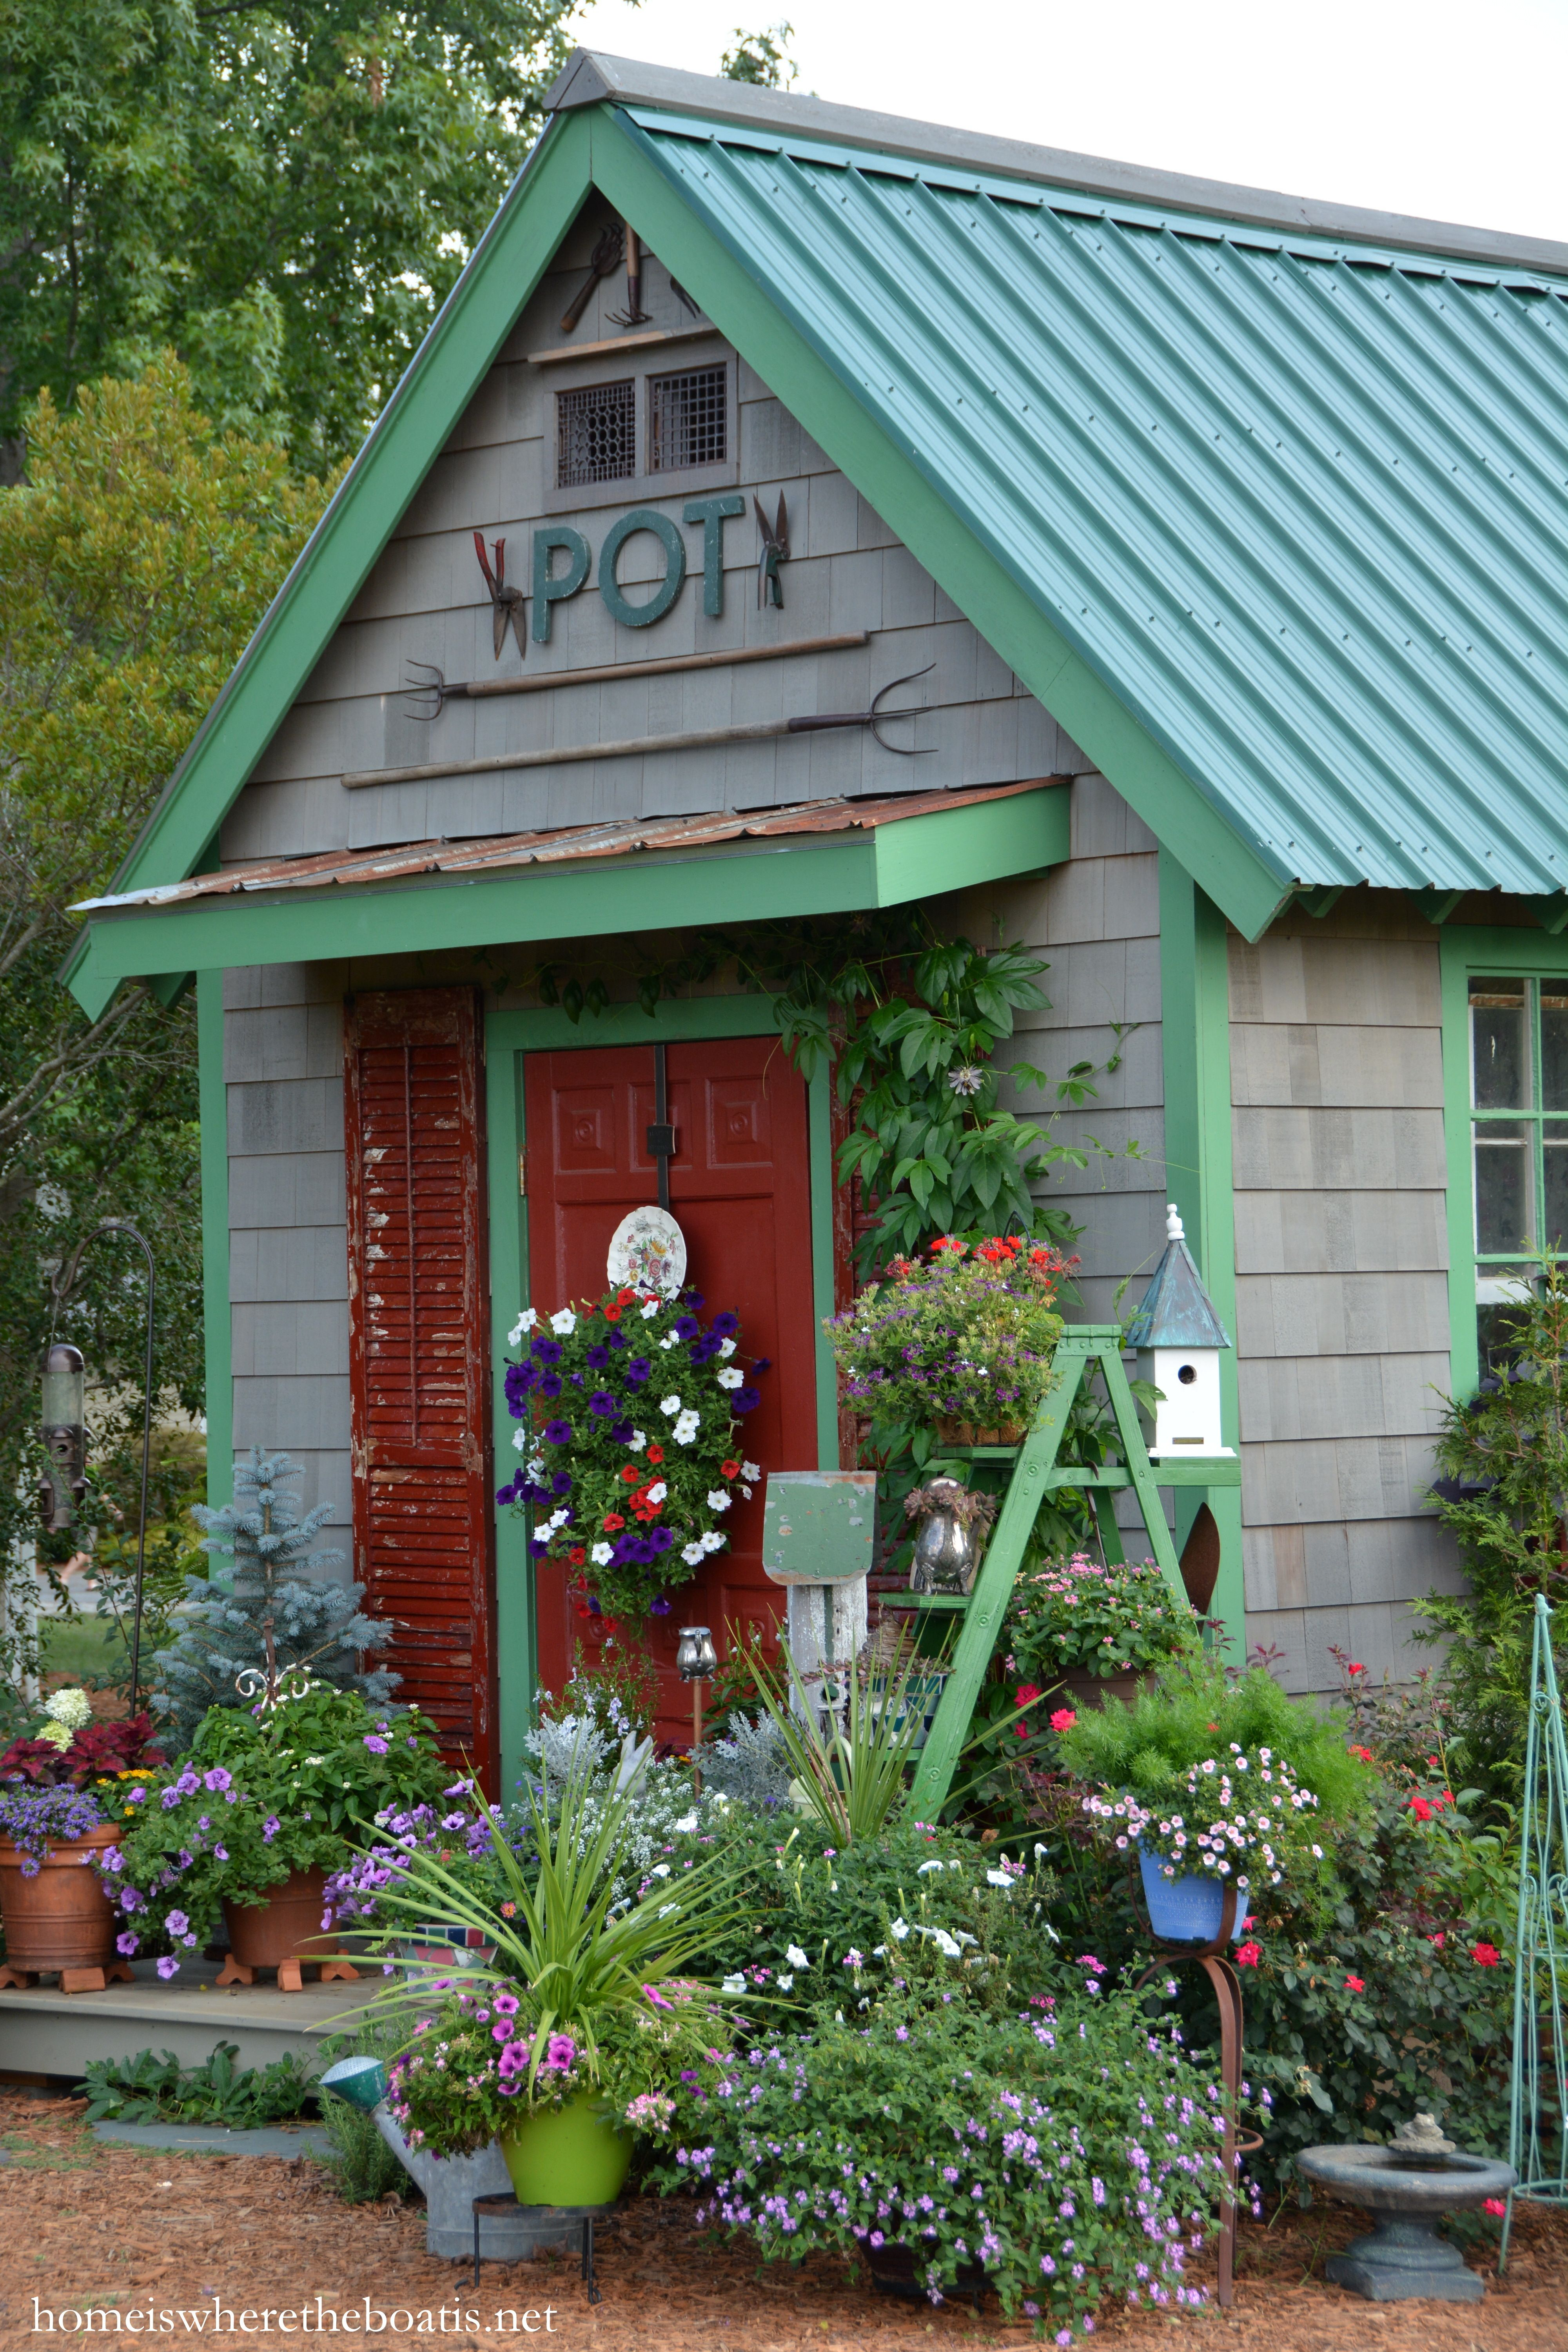 Exceptional Potting Shed: After, With Vintage Garden Tools | Homeiswheretheboatis.net